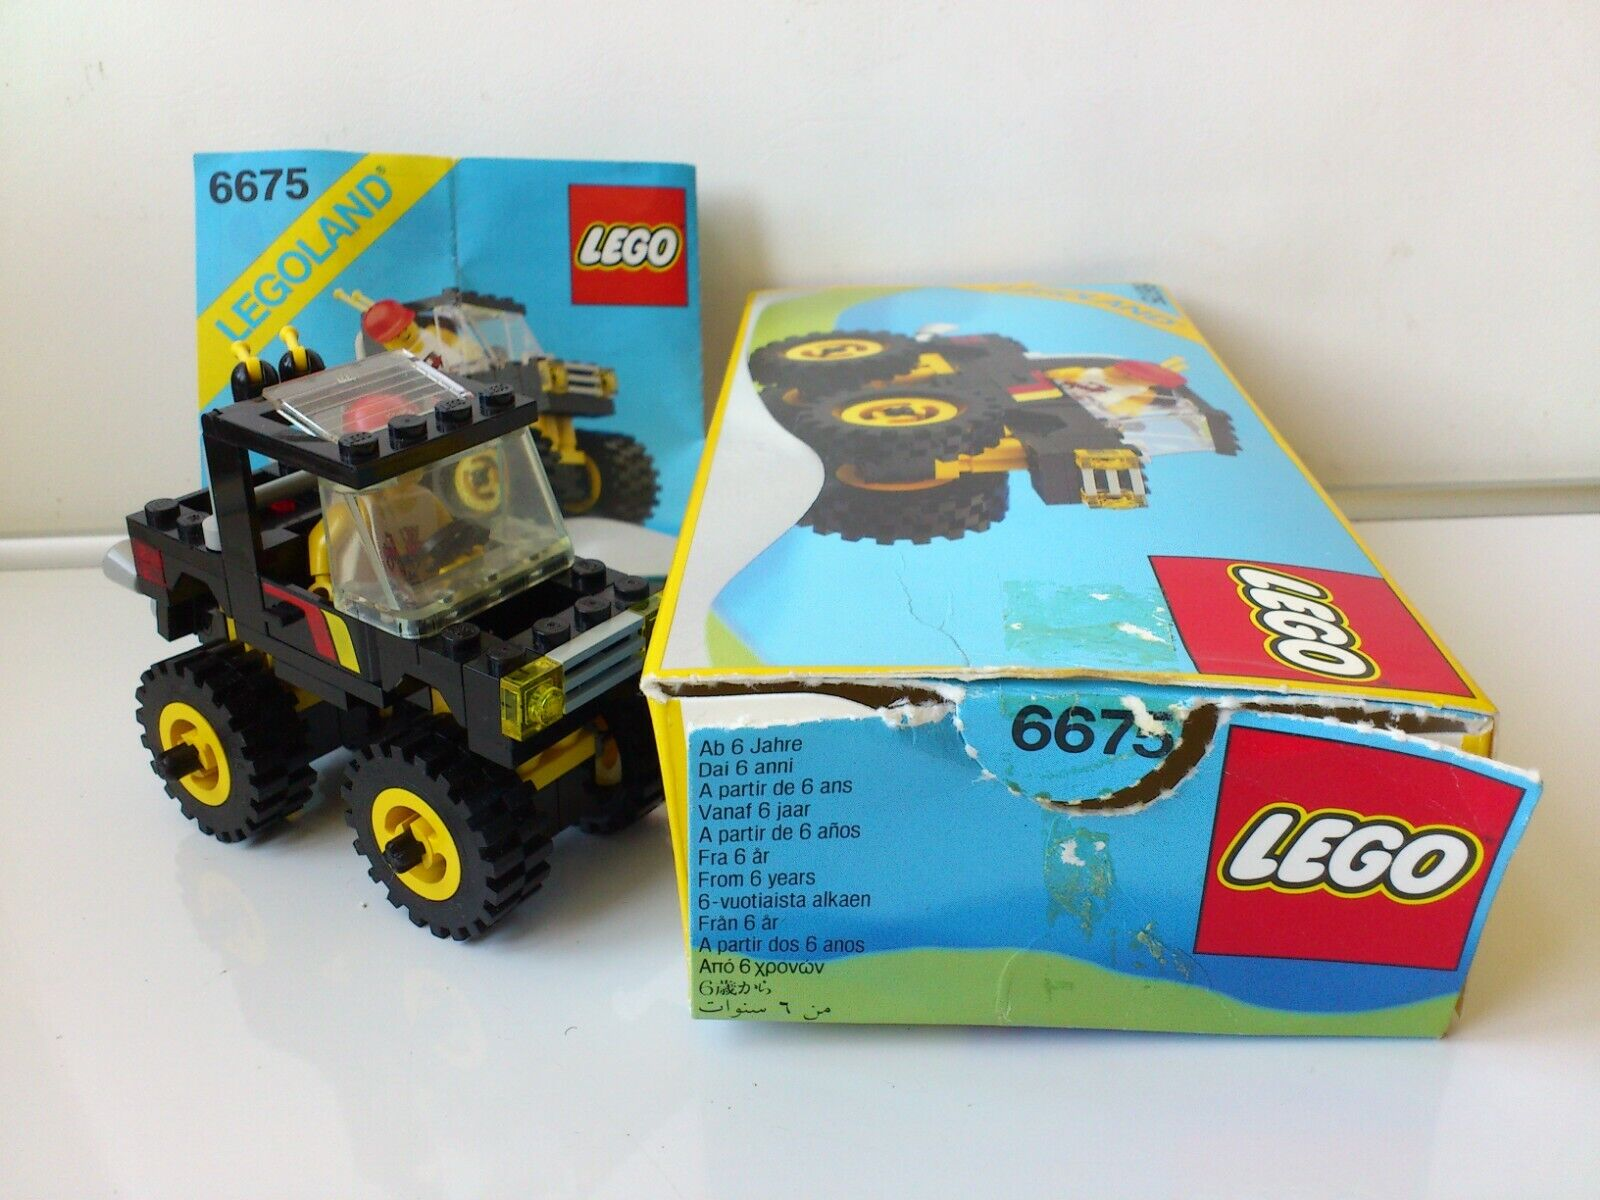 Lego vintage set. Legoland Legoland Legoland no 6675.Four-wheel drive.100 % w. box and manual.1988 b30128